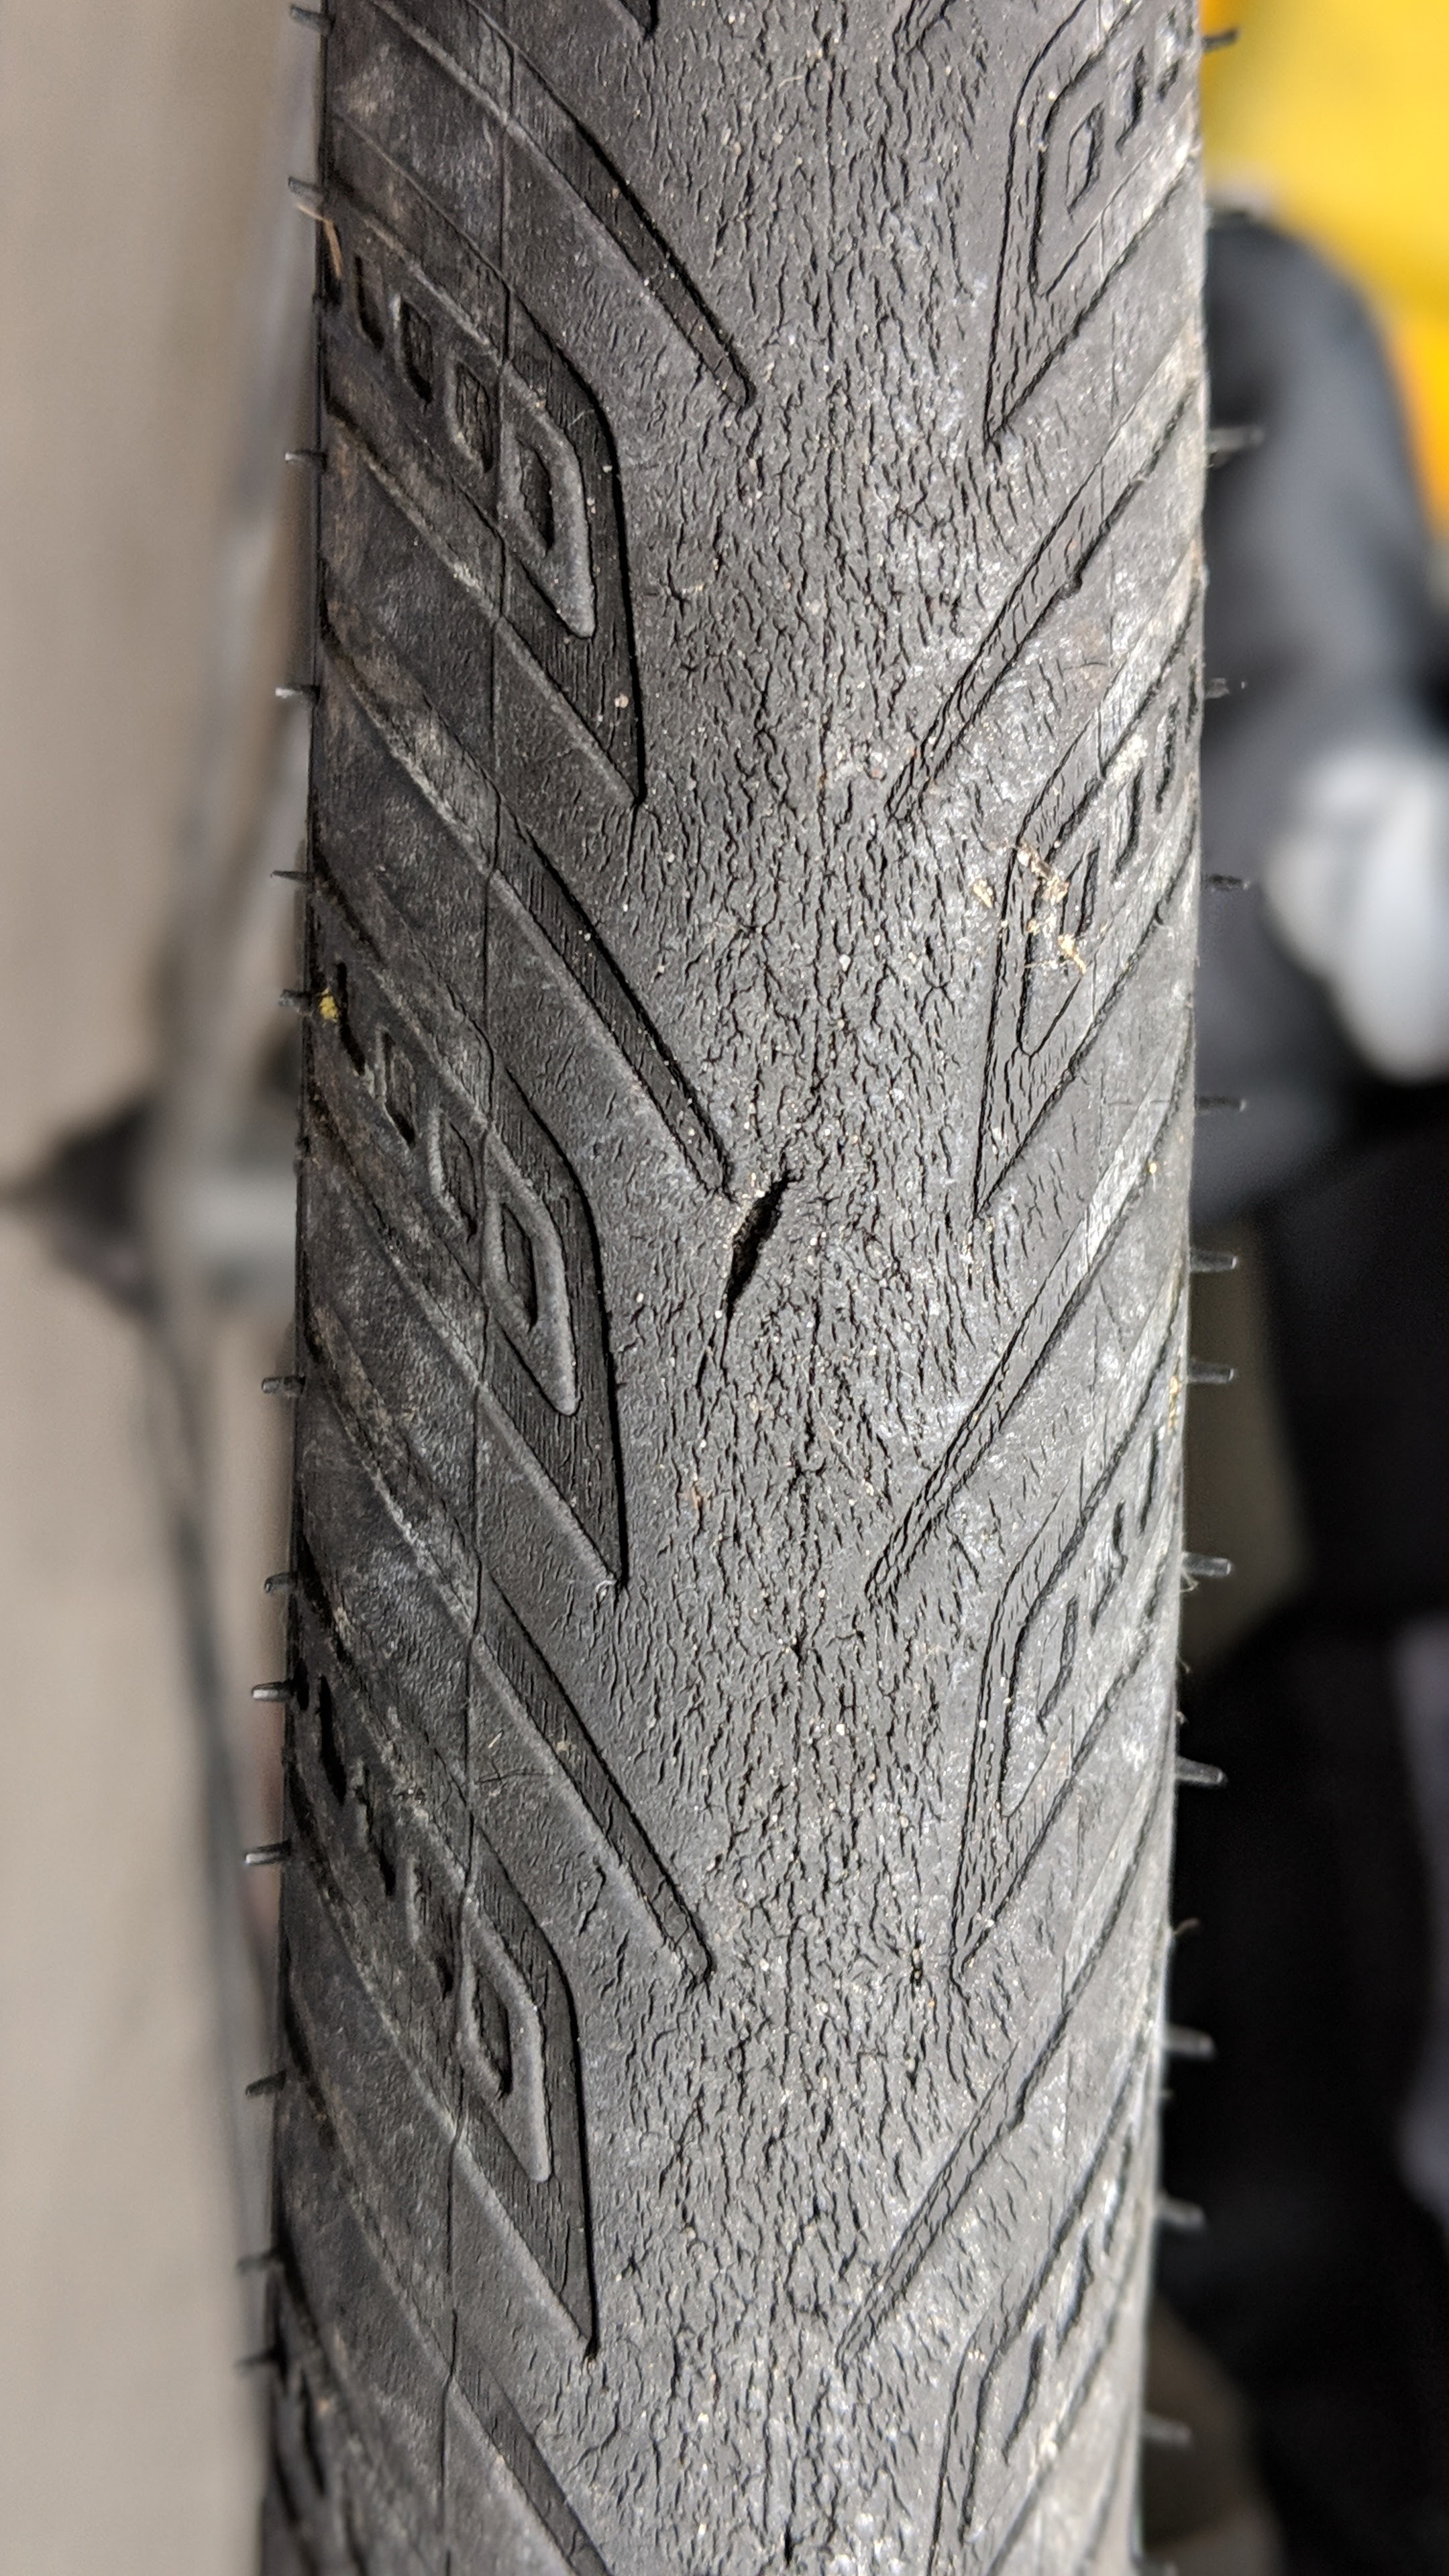 Dry rotting tire